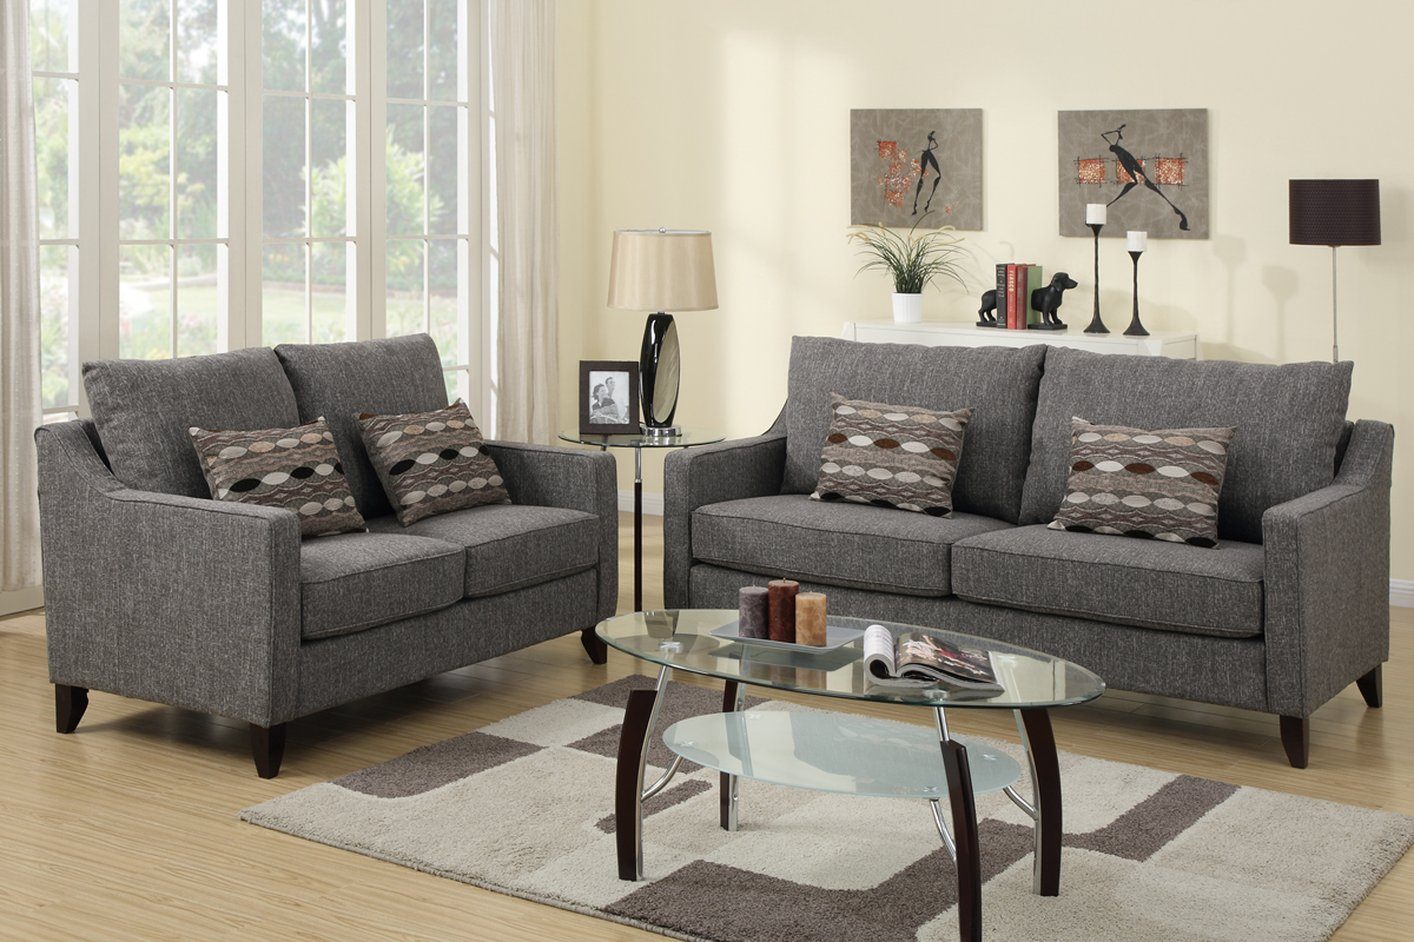 Poundex avery f7544 grey fabric sofa and loveseat set Fabric sofas and loveseats